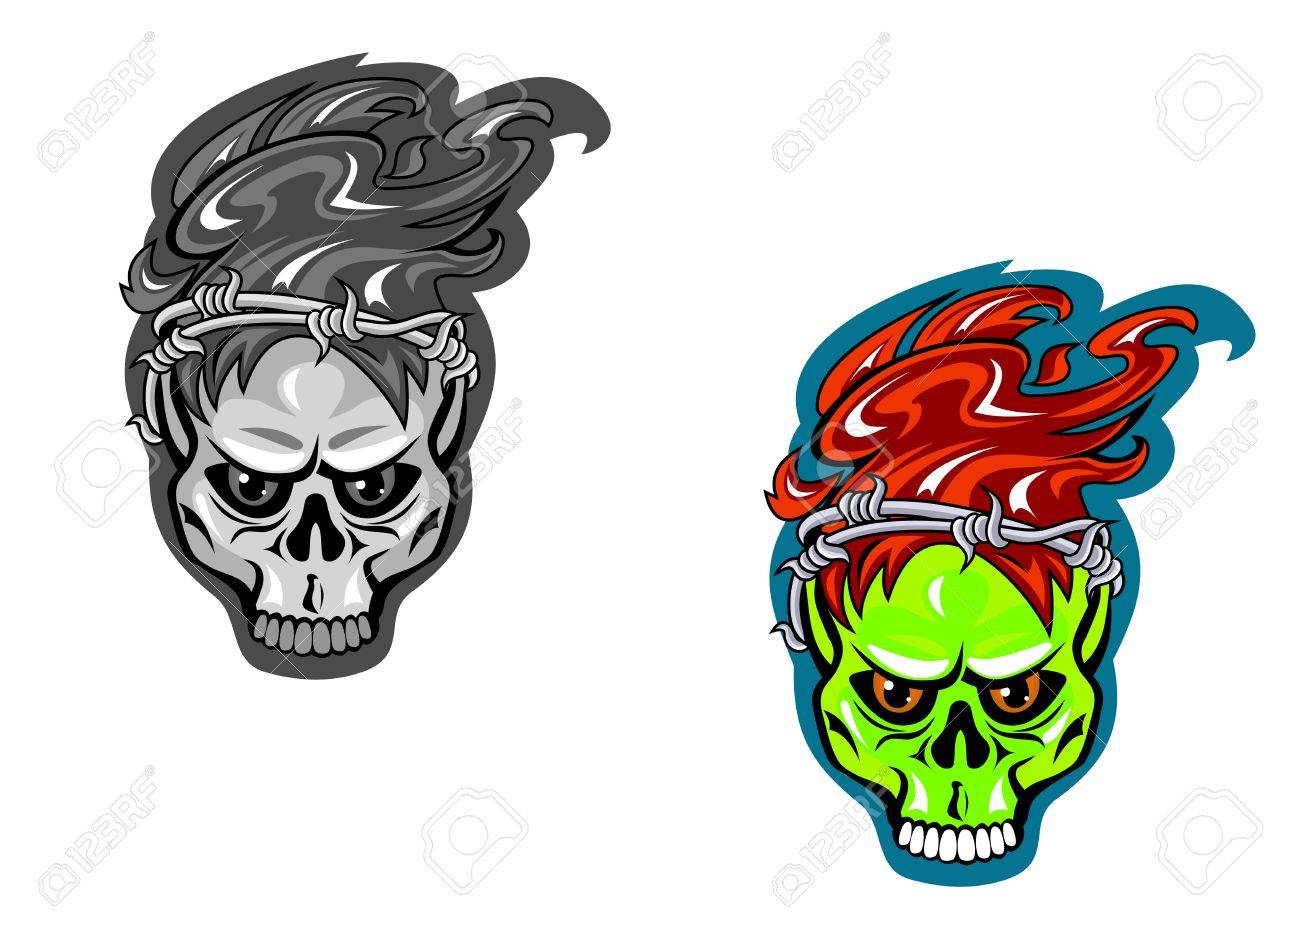 Skull With Barbed Wire For Tattoo Design. Vector Illustration ...